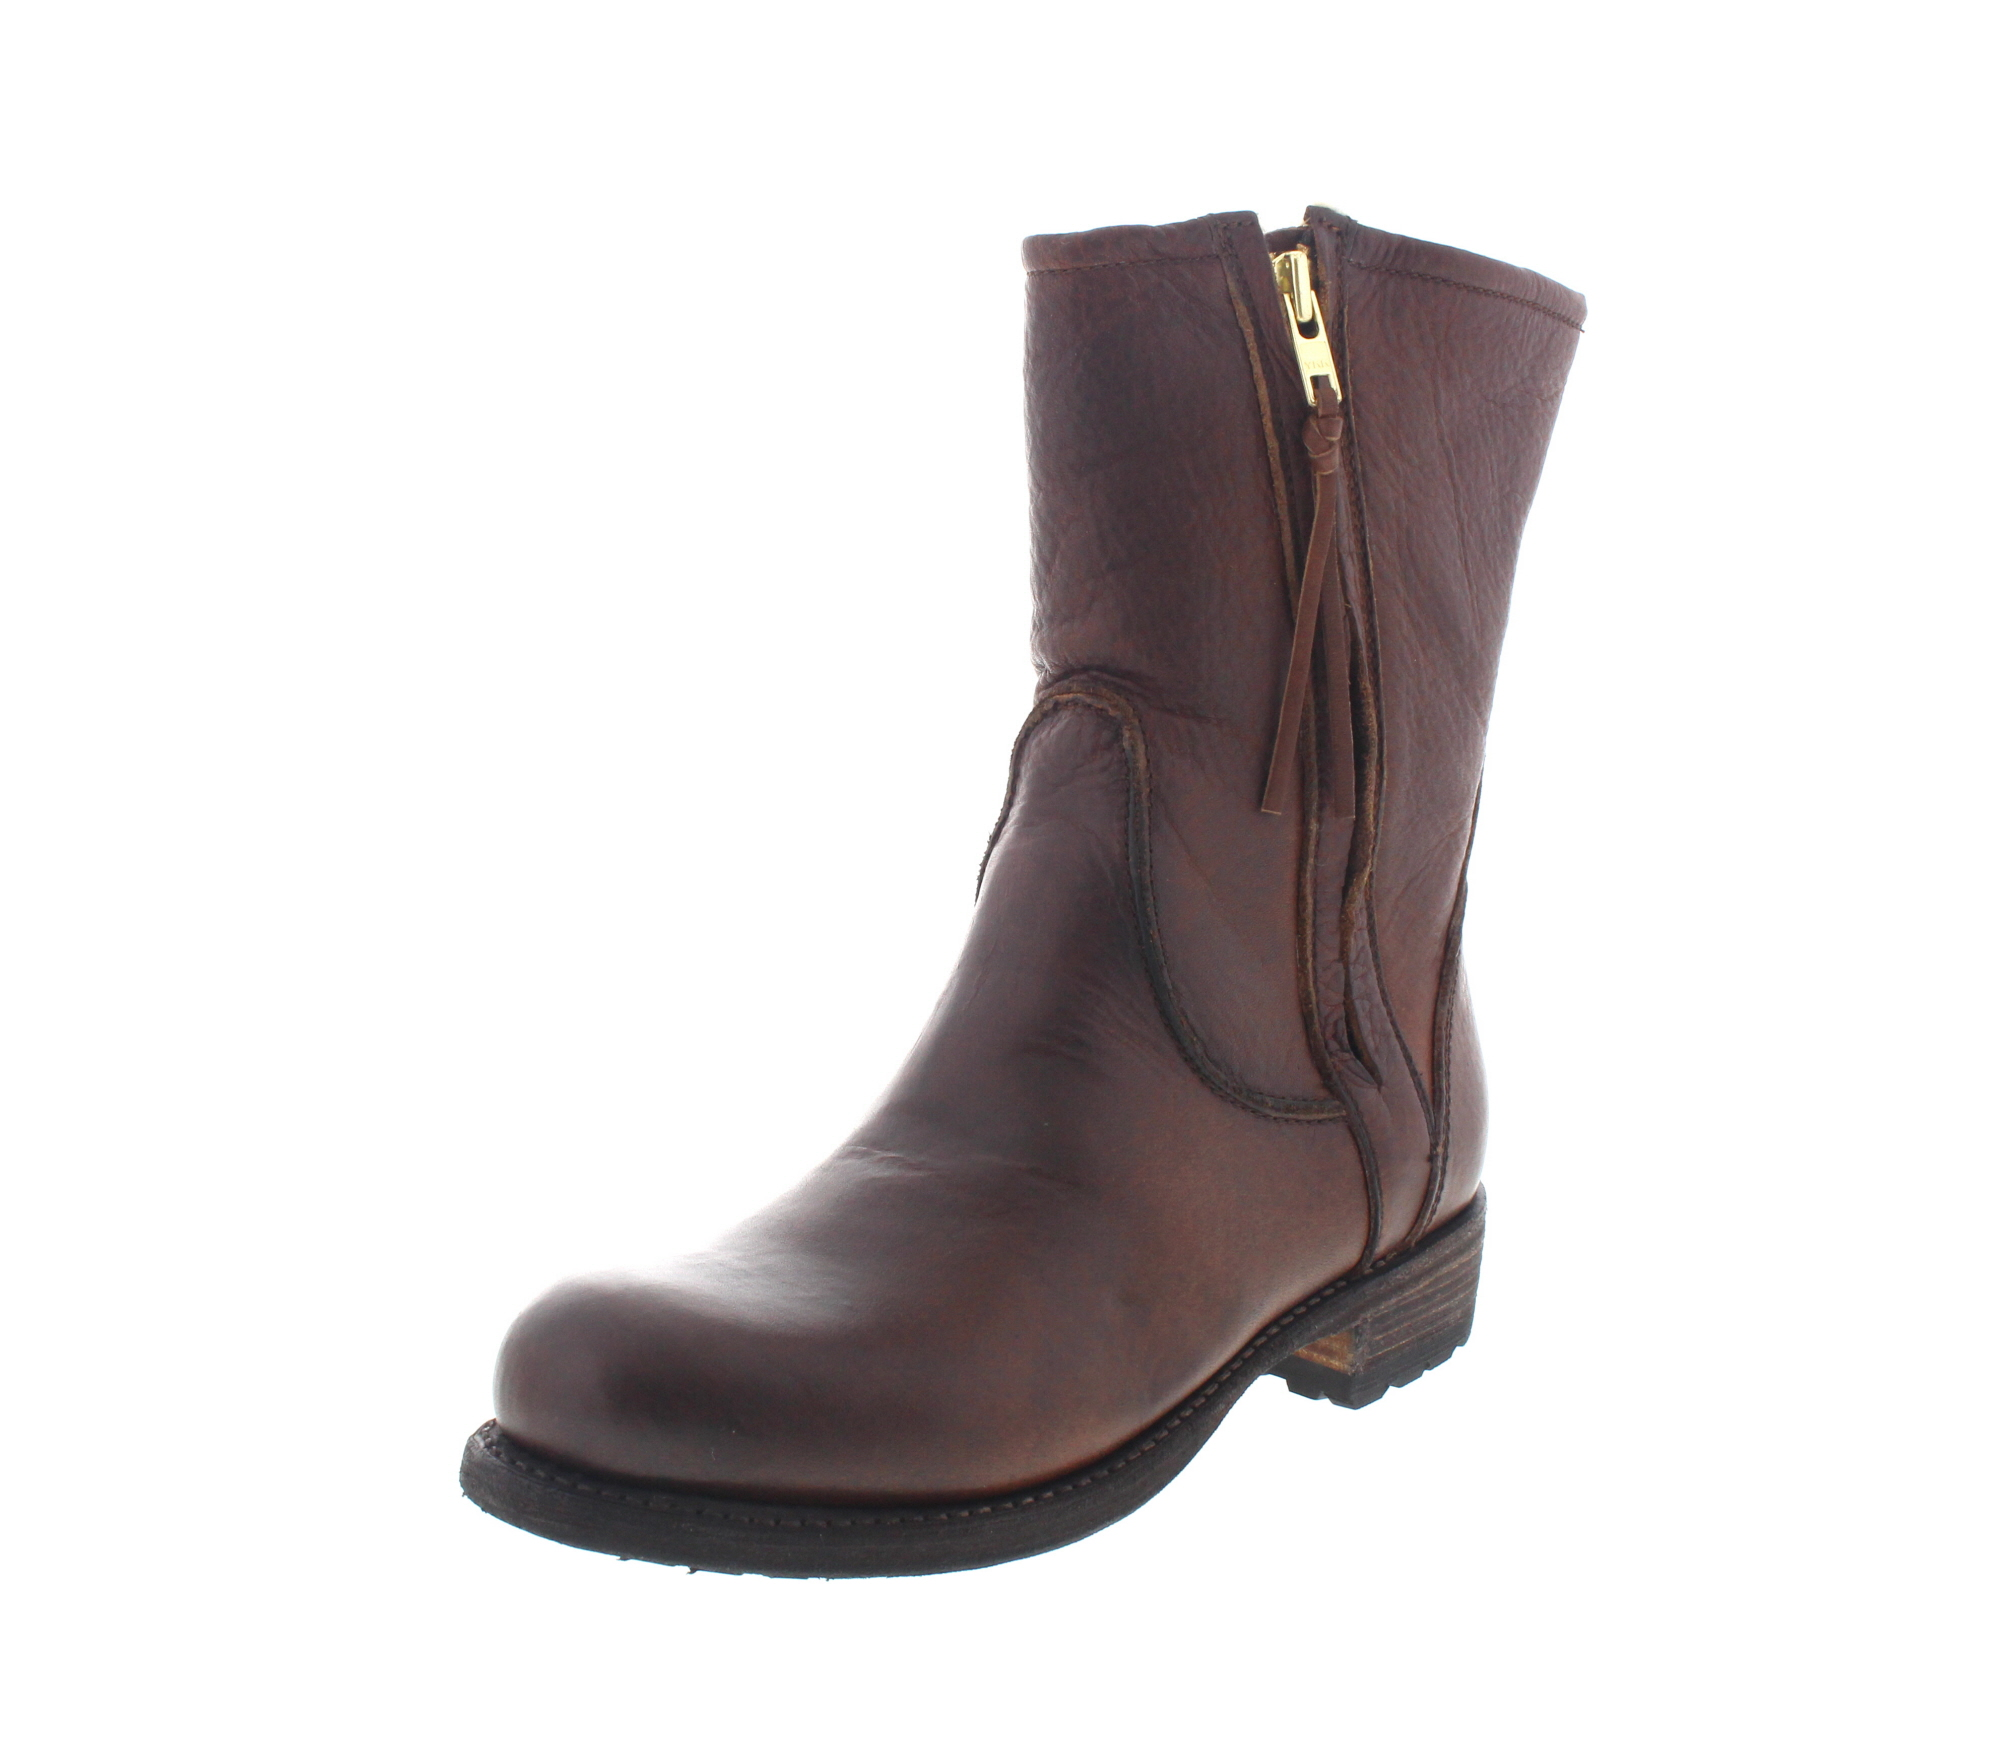 BLACKSTONE Damenschuhe - Boots MARY EW74 - old yellow-0